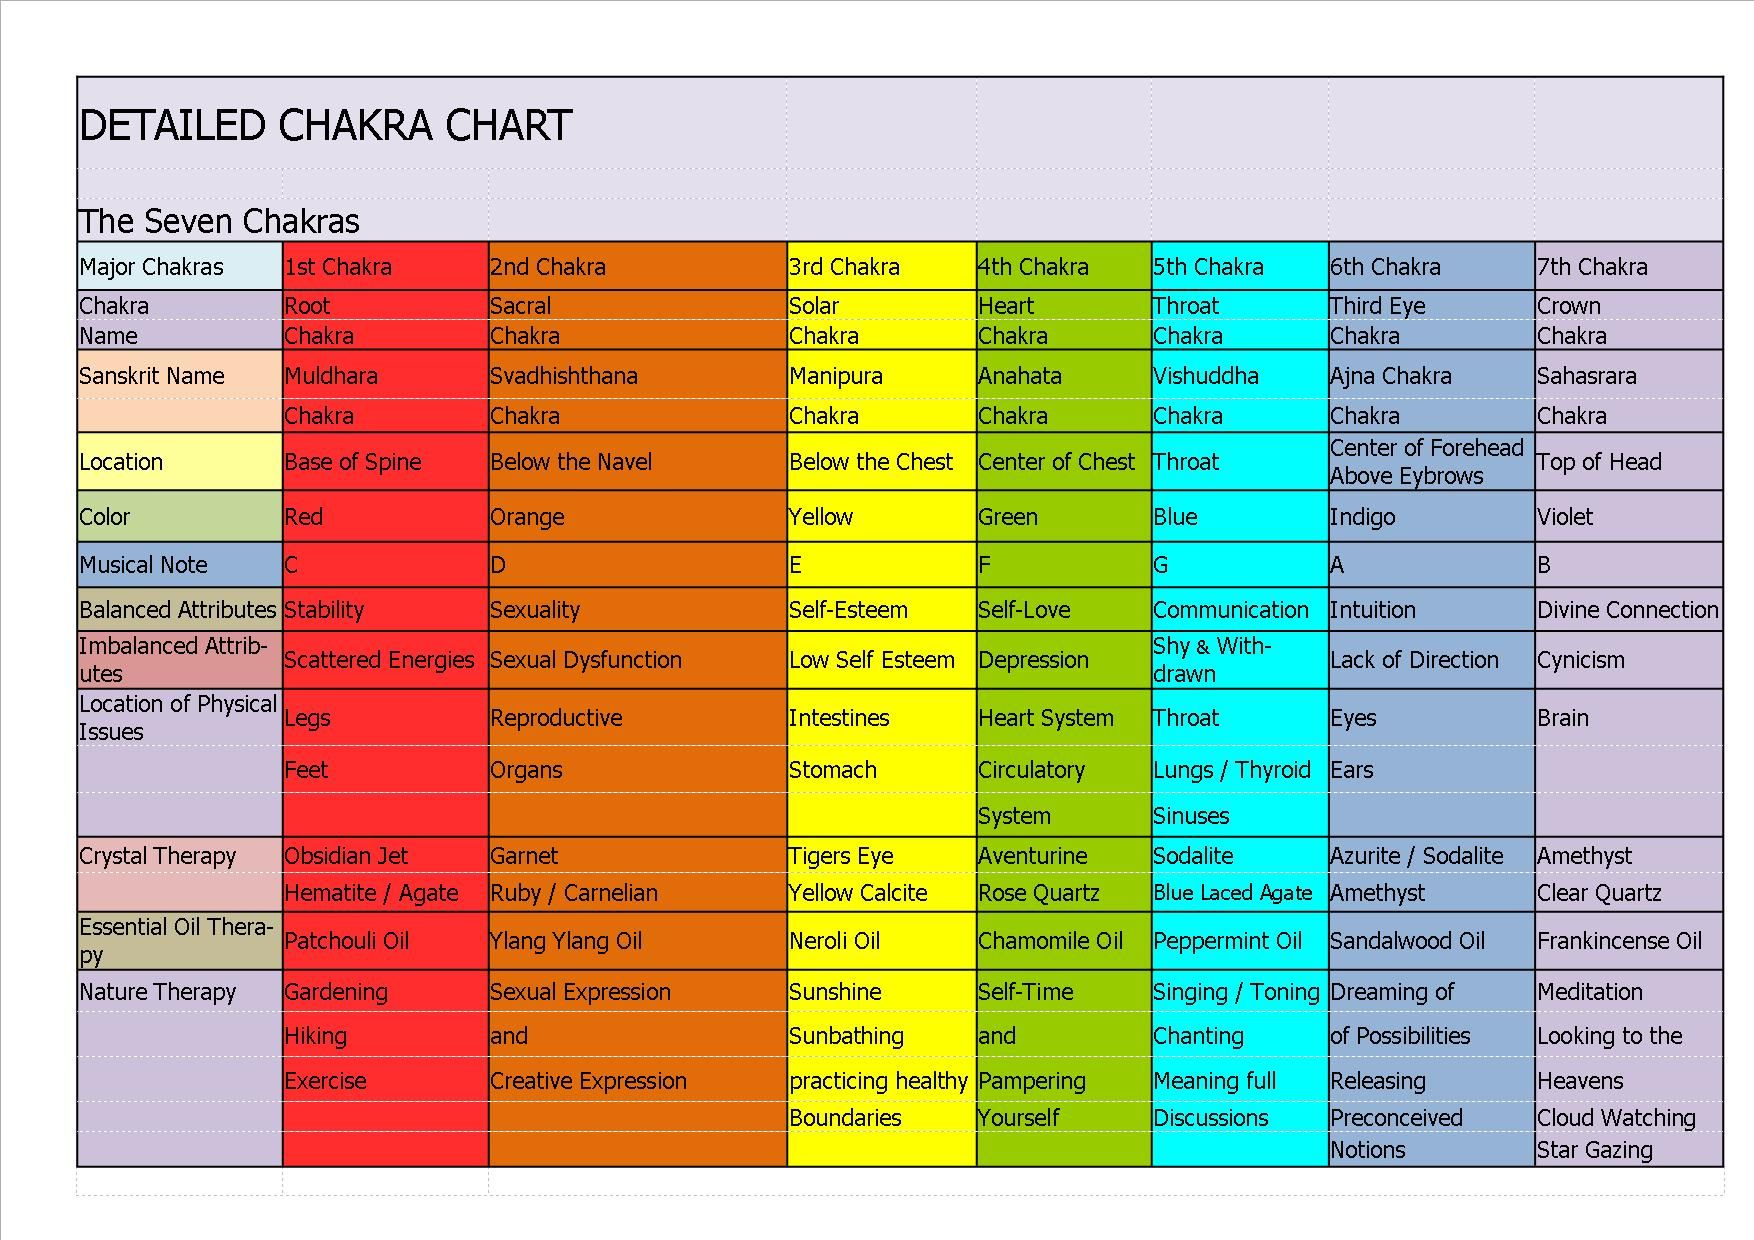 Detailed Chakra Chart Pub The Ultimate Inner Edge